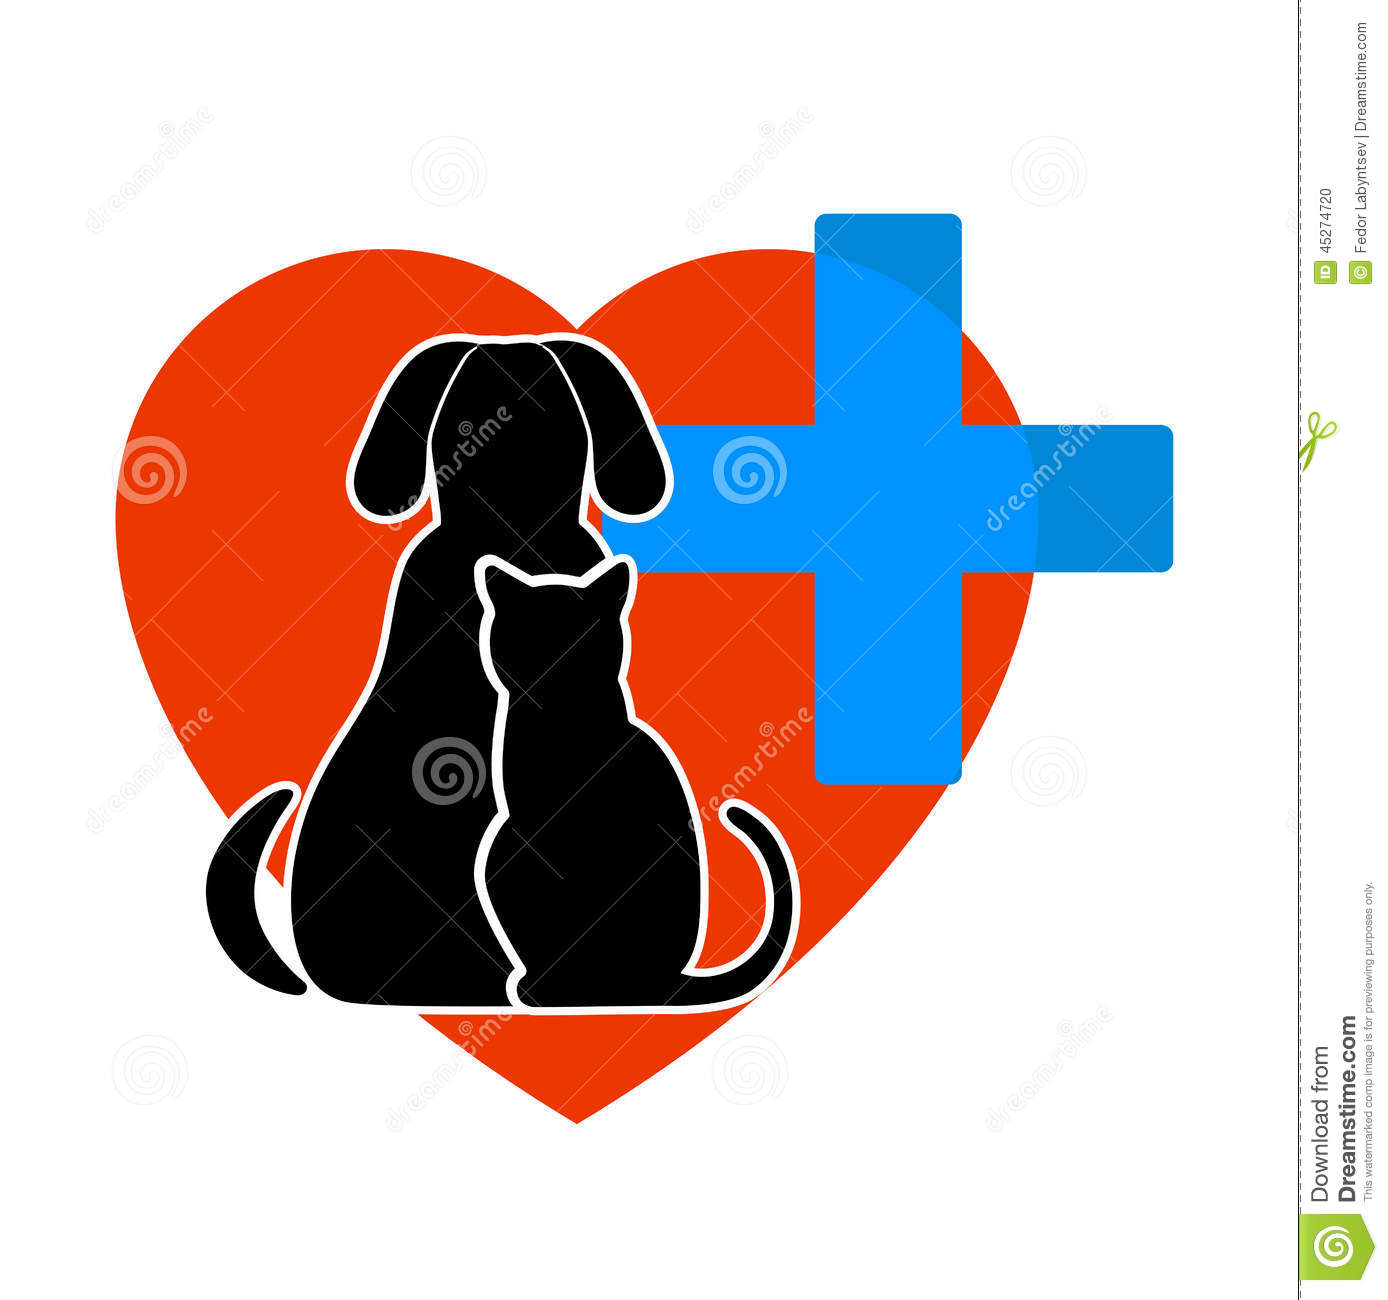 ... the image it is presented cat and dog symbol of veterinary medicine